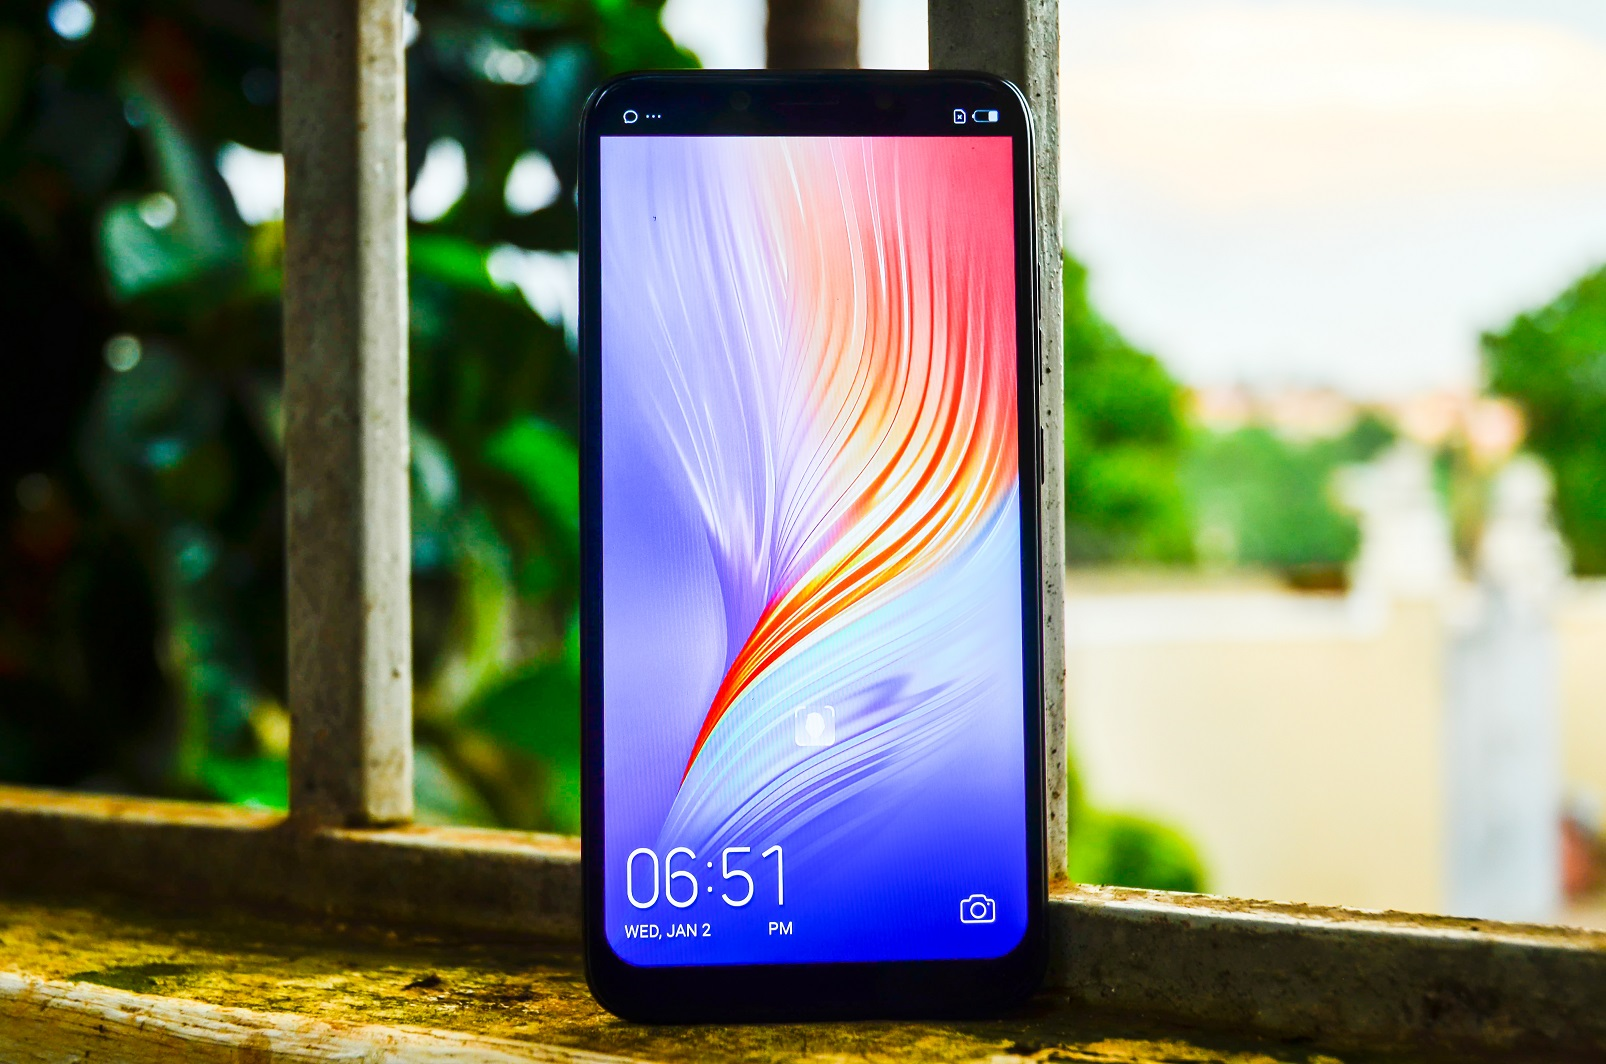 Tecno Camon 11 Pro Full Review: A Built Device With Good